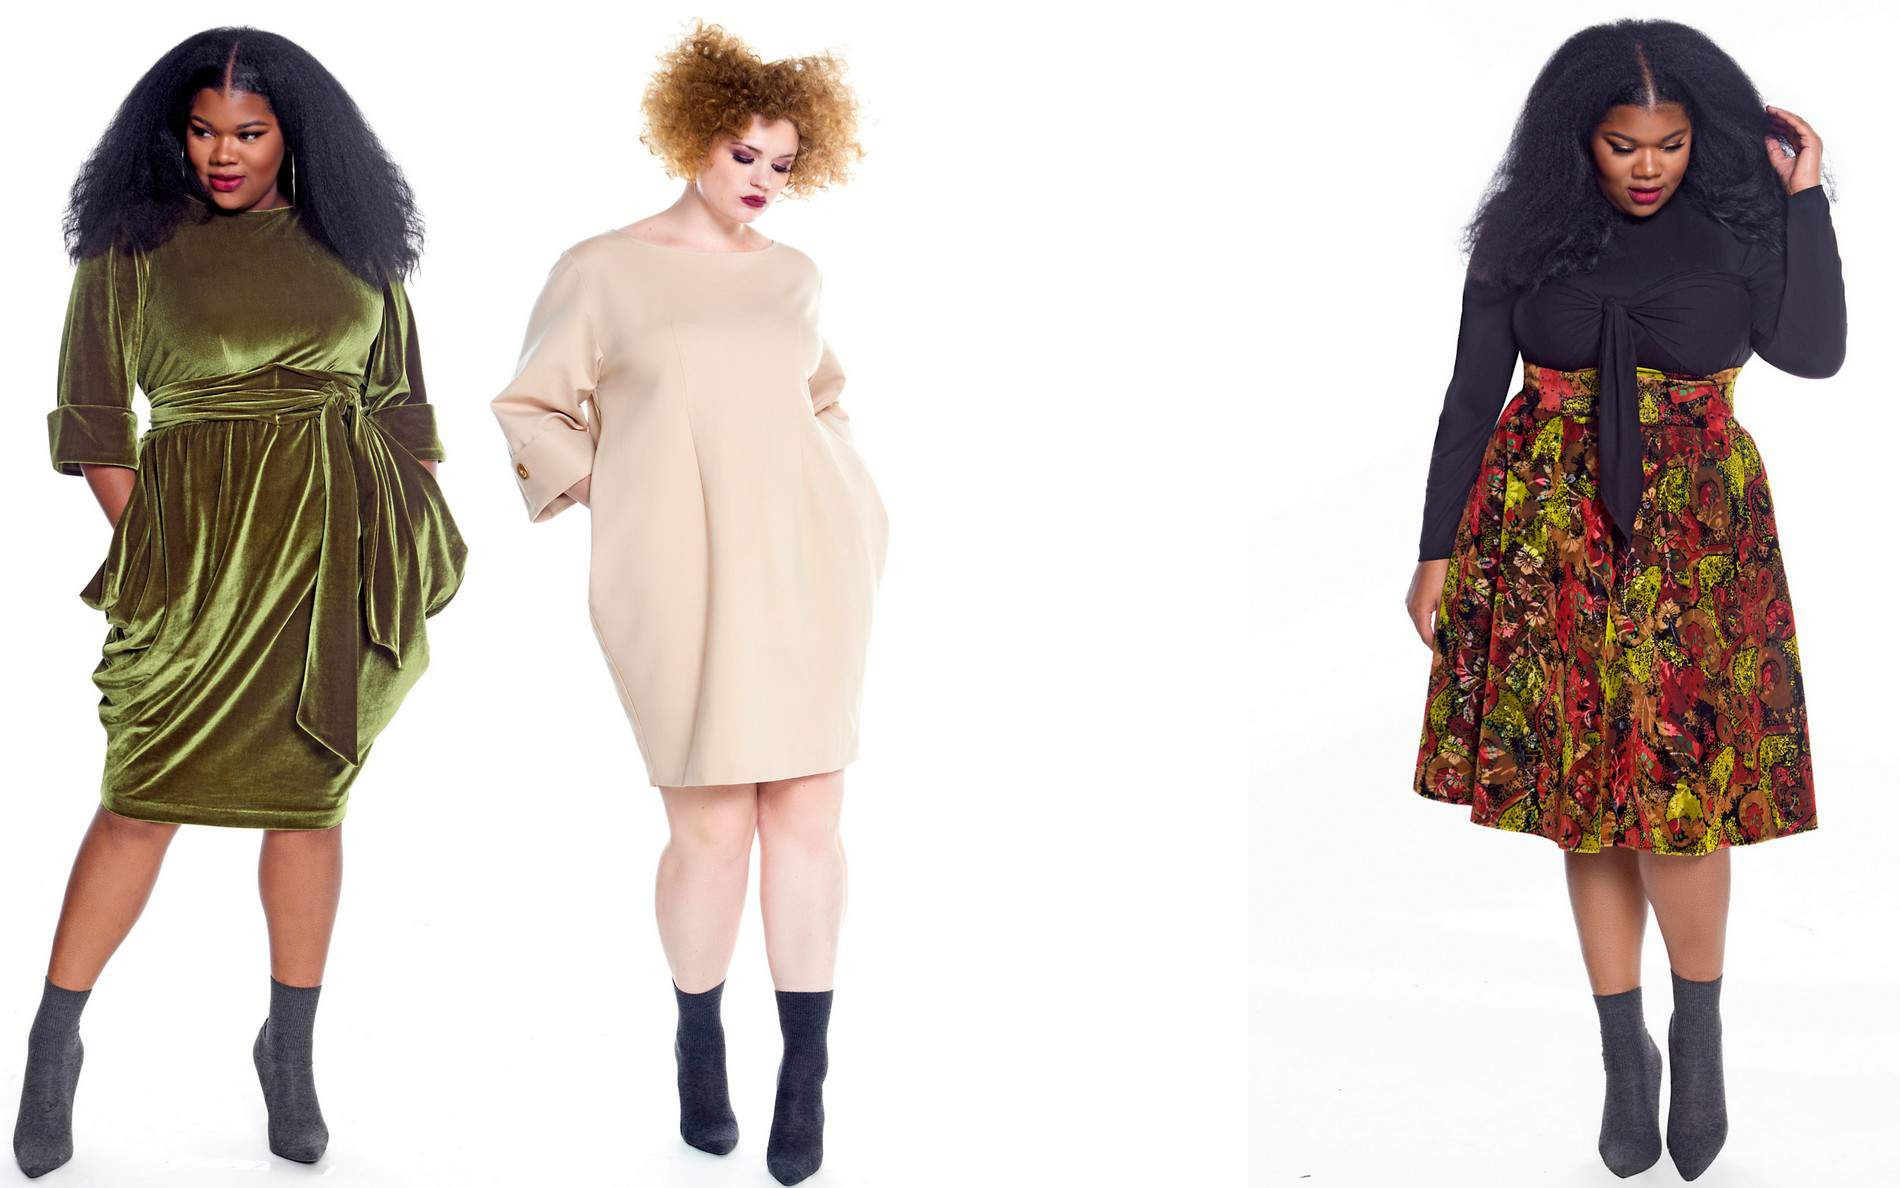 First Look at the Jibri Fall Collection